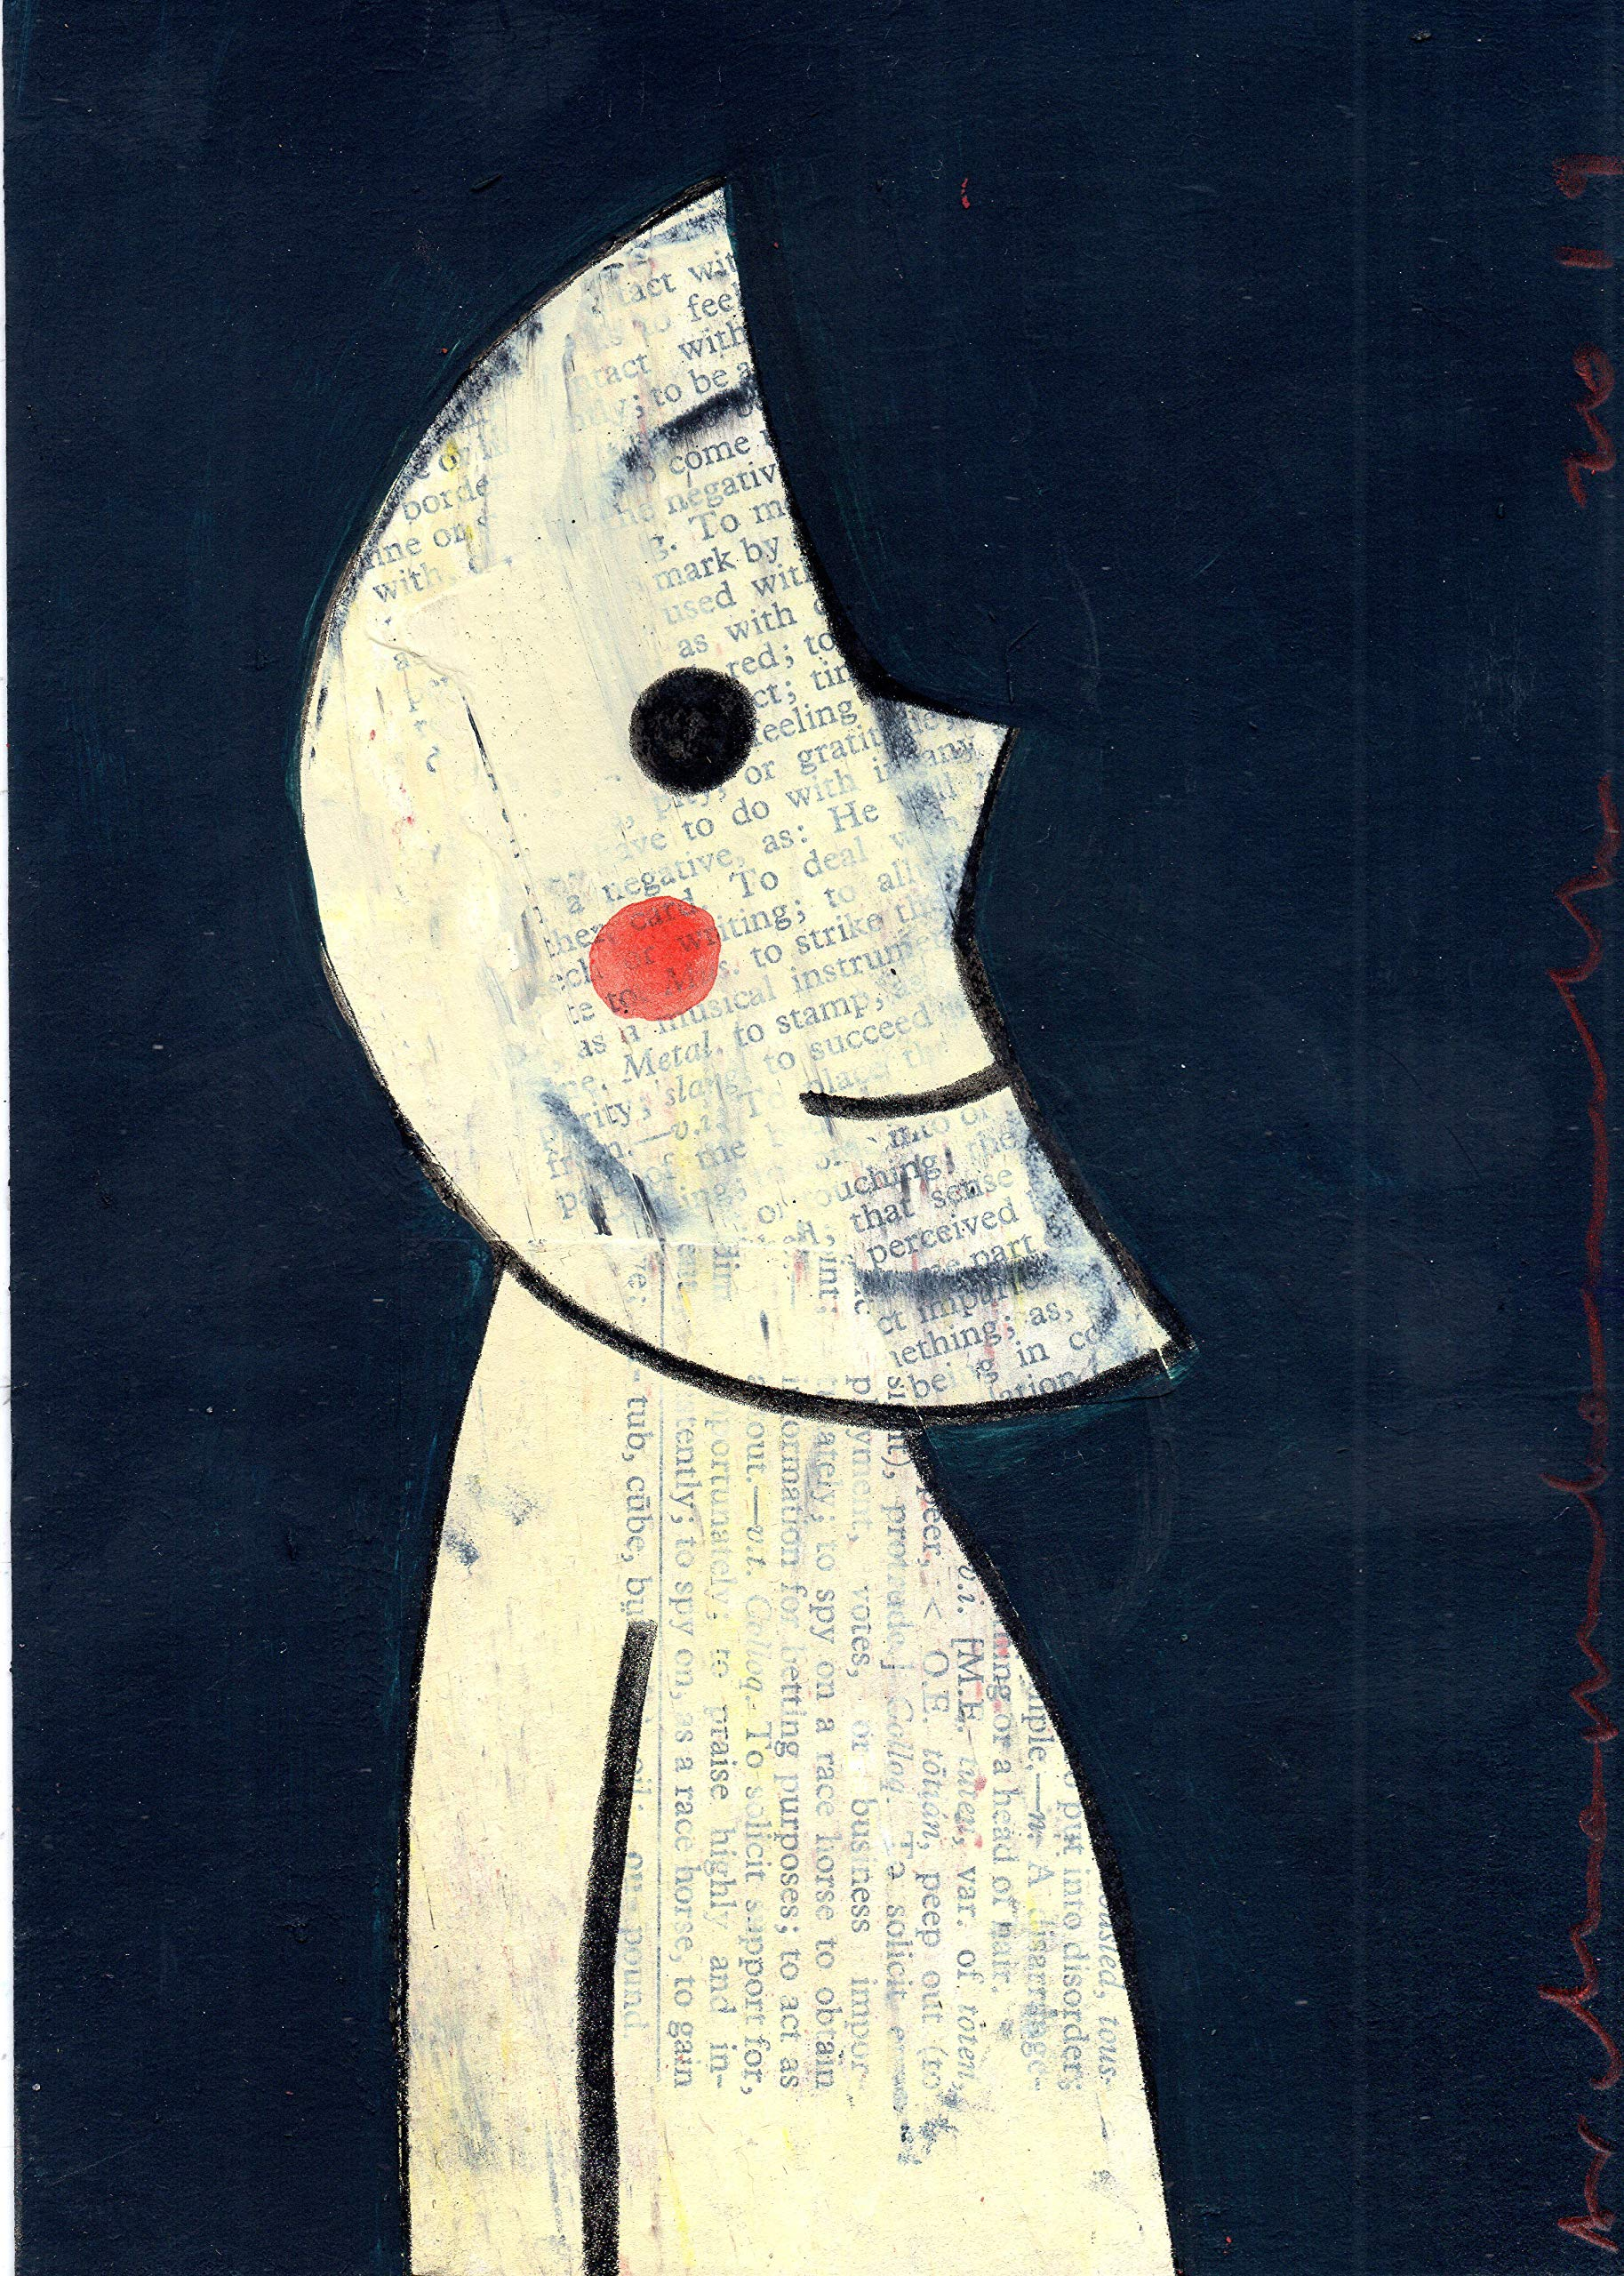 MOON FACE - original collage by